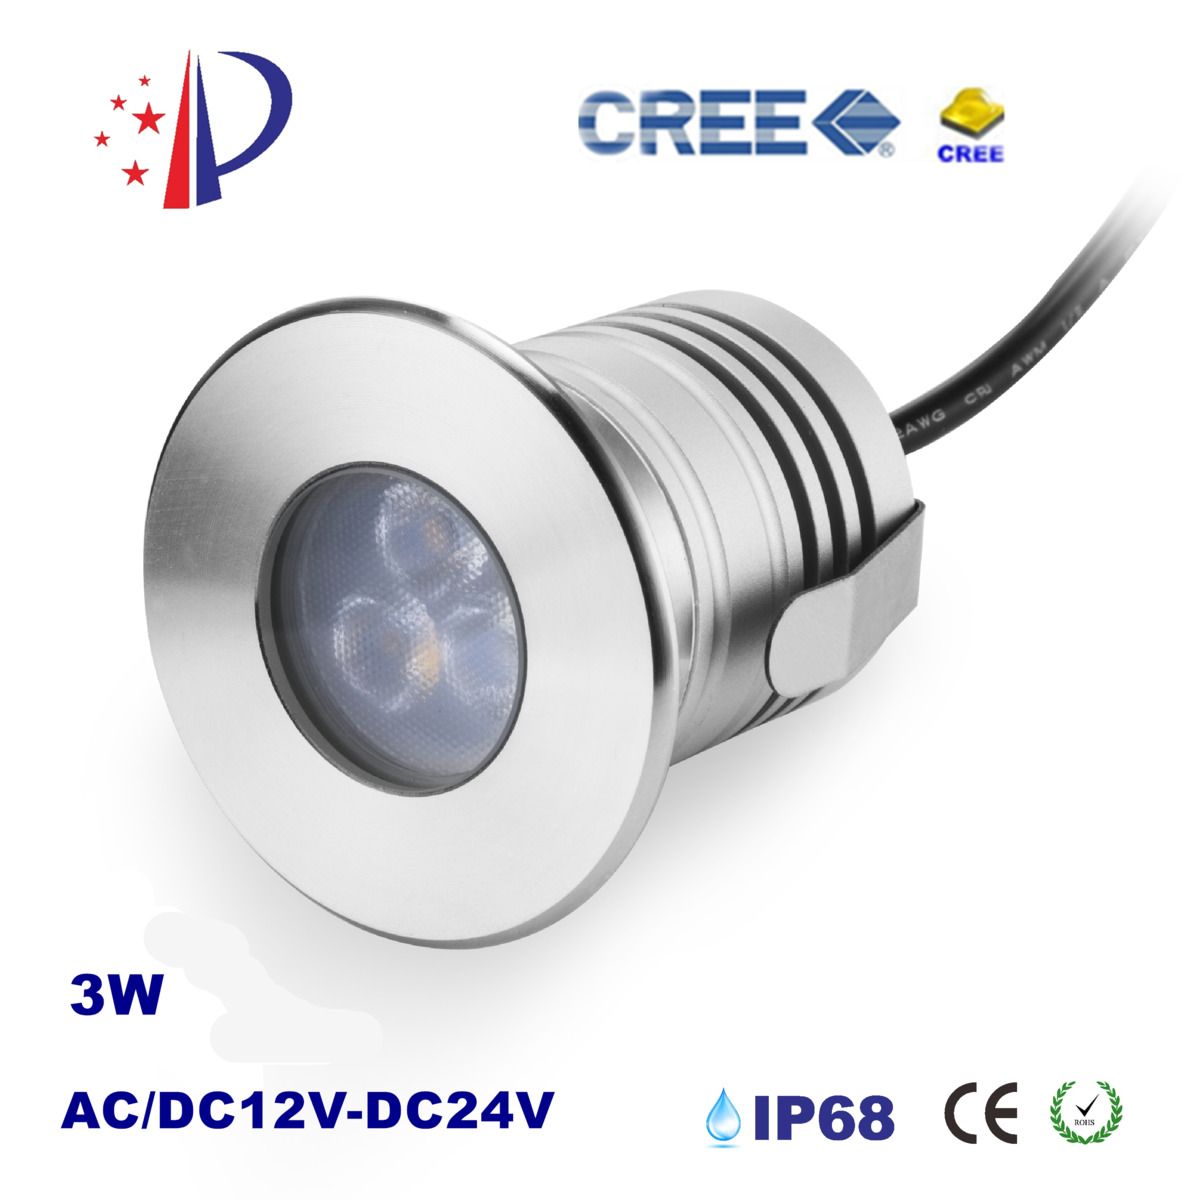 3W Safe Swimming Pool Spotlight IP68 Underwater Fountain Light DC12-24V Input Waterproof Downlight With Cree Chip CE List 4pcs